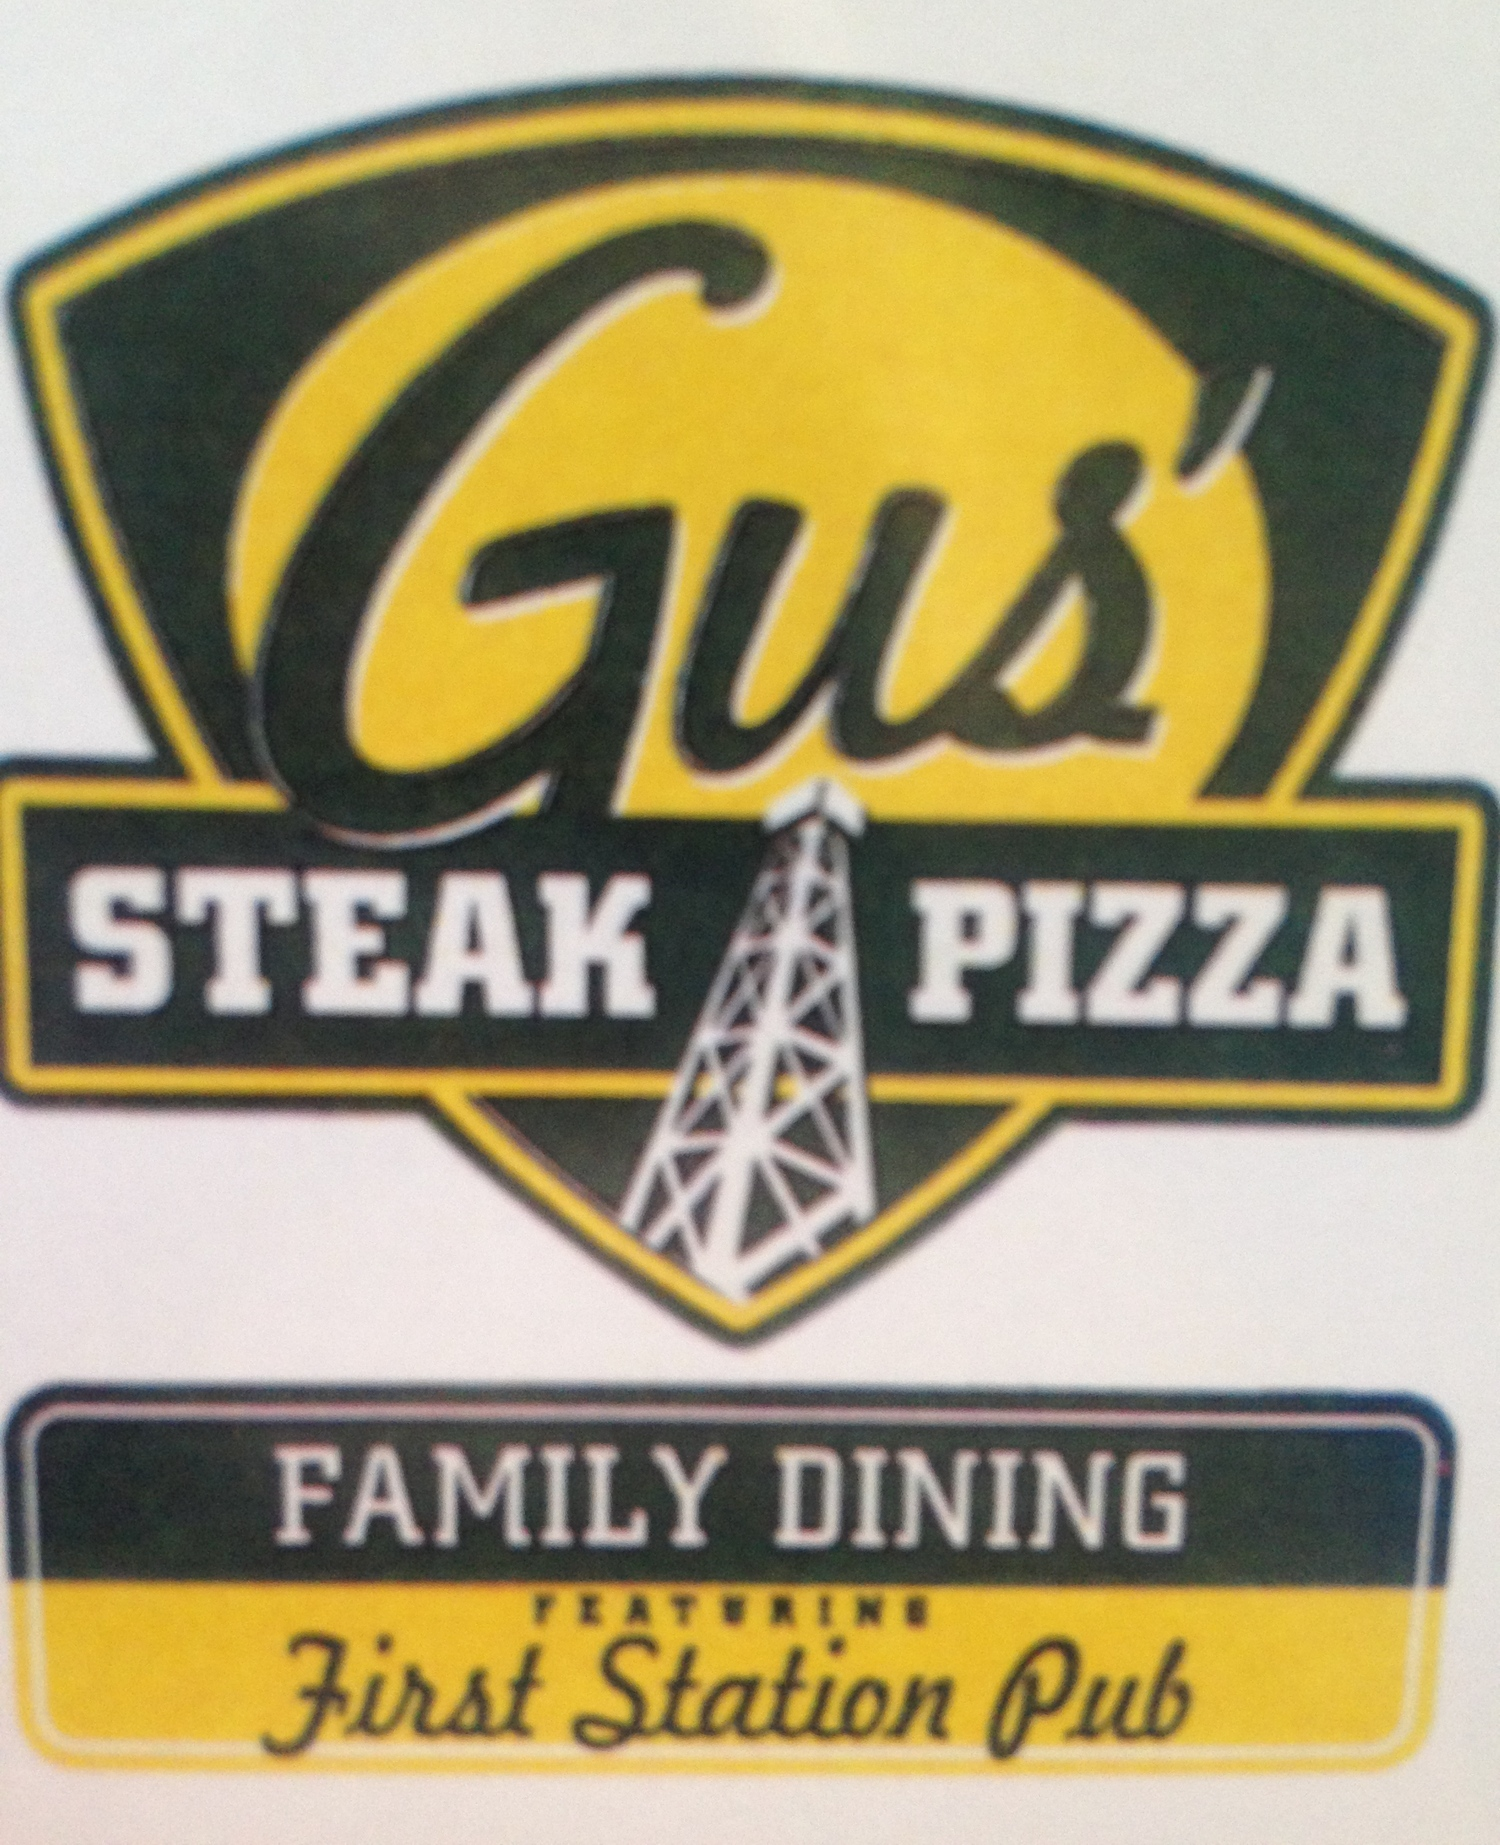 Gus Steak & Pizza